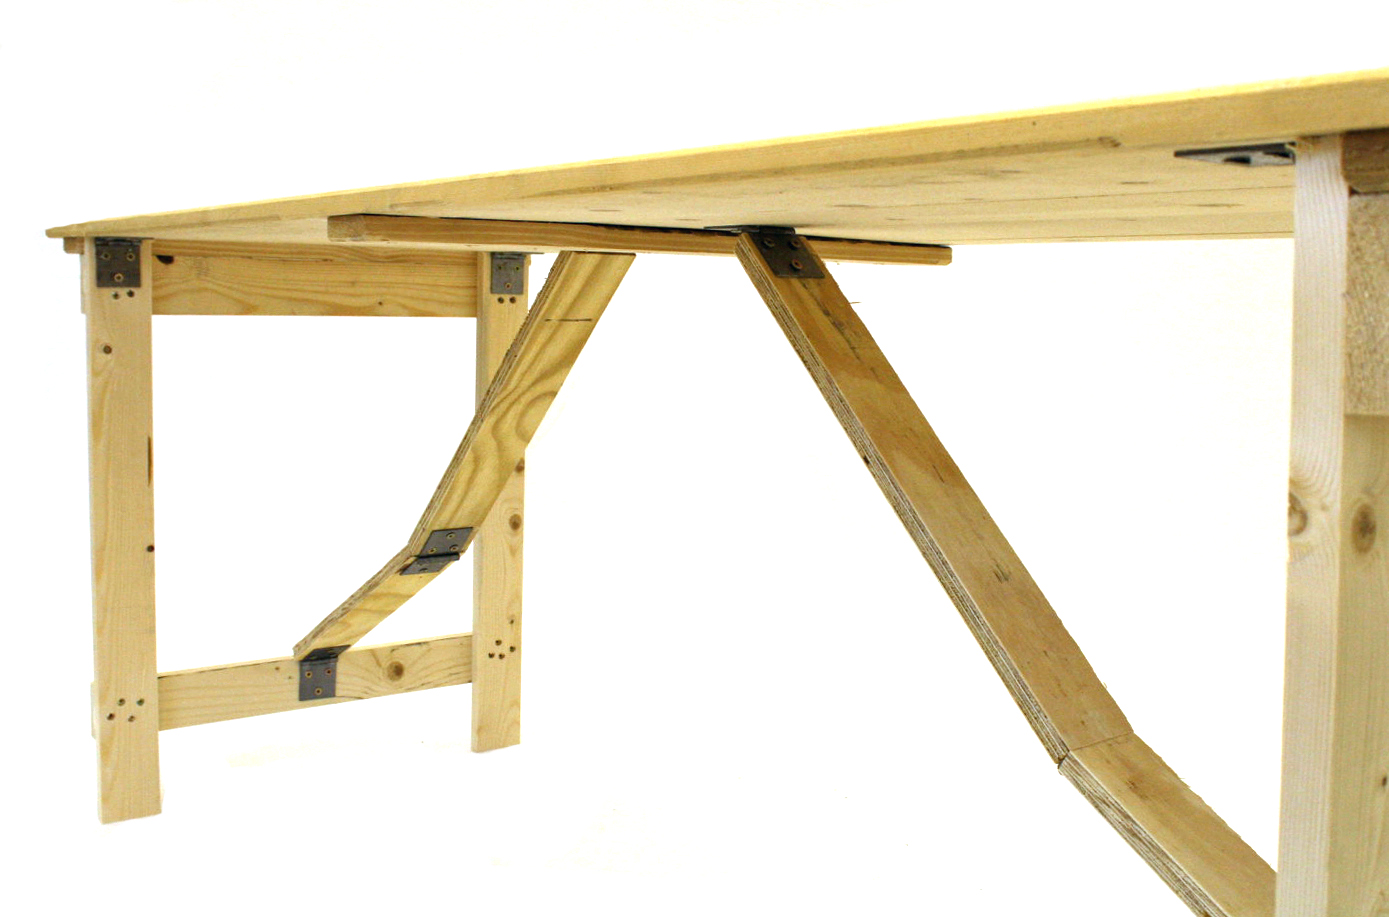 Wooden Trestle Table 6 By 2 Be Furniture Sales